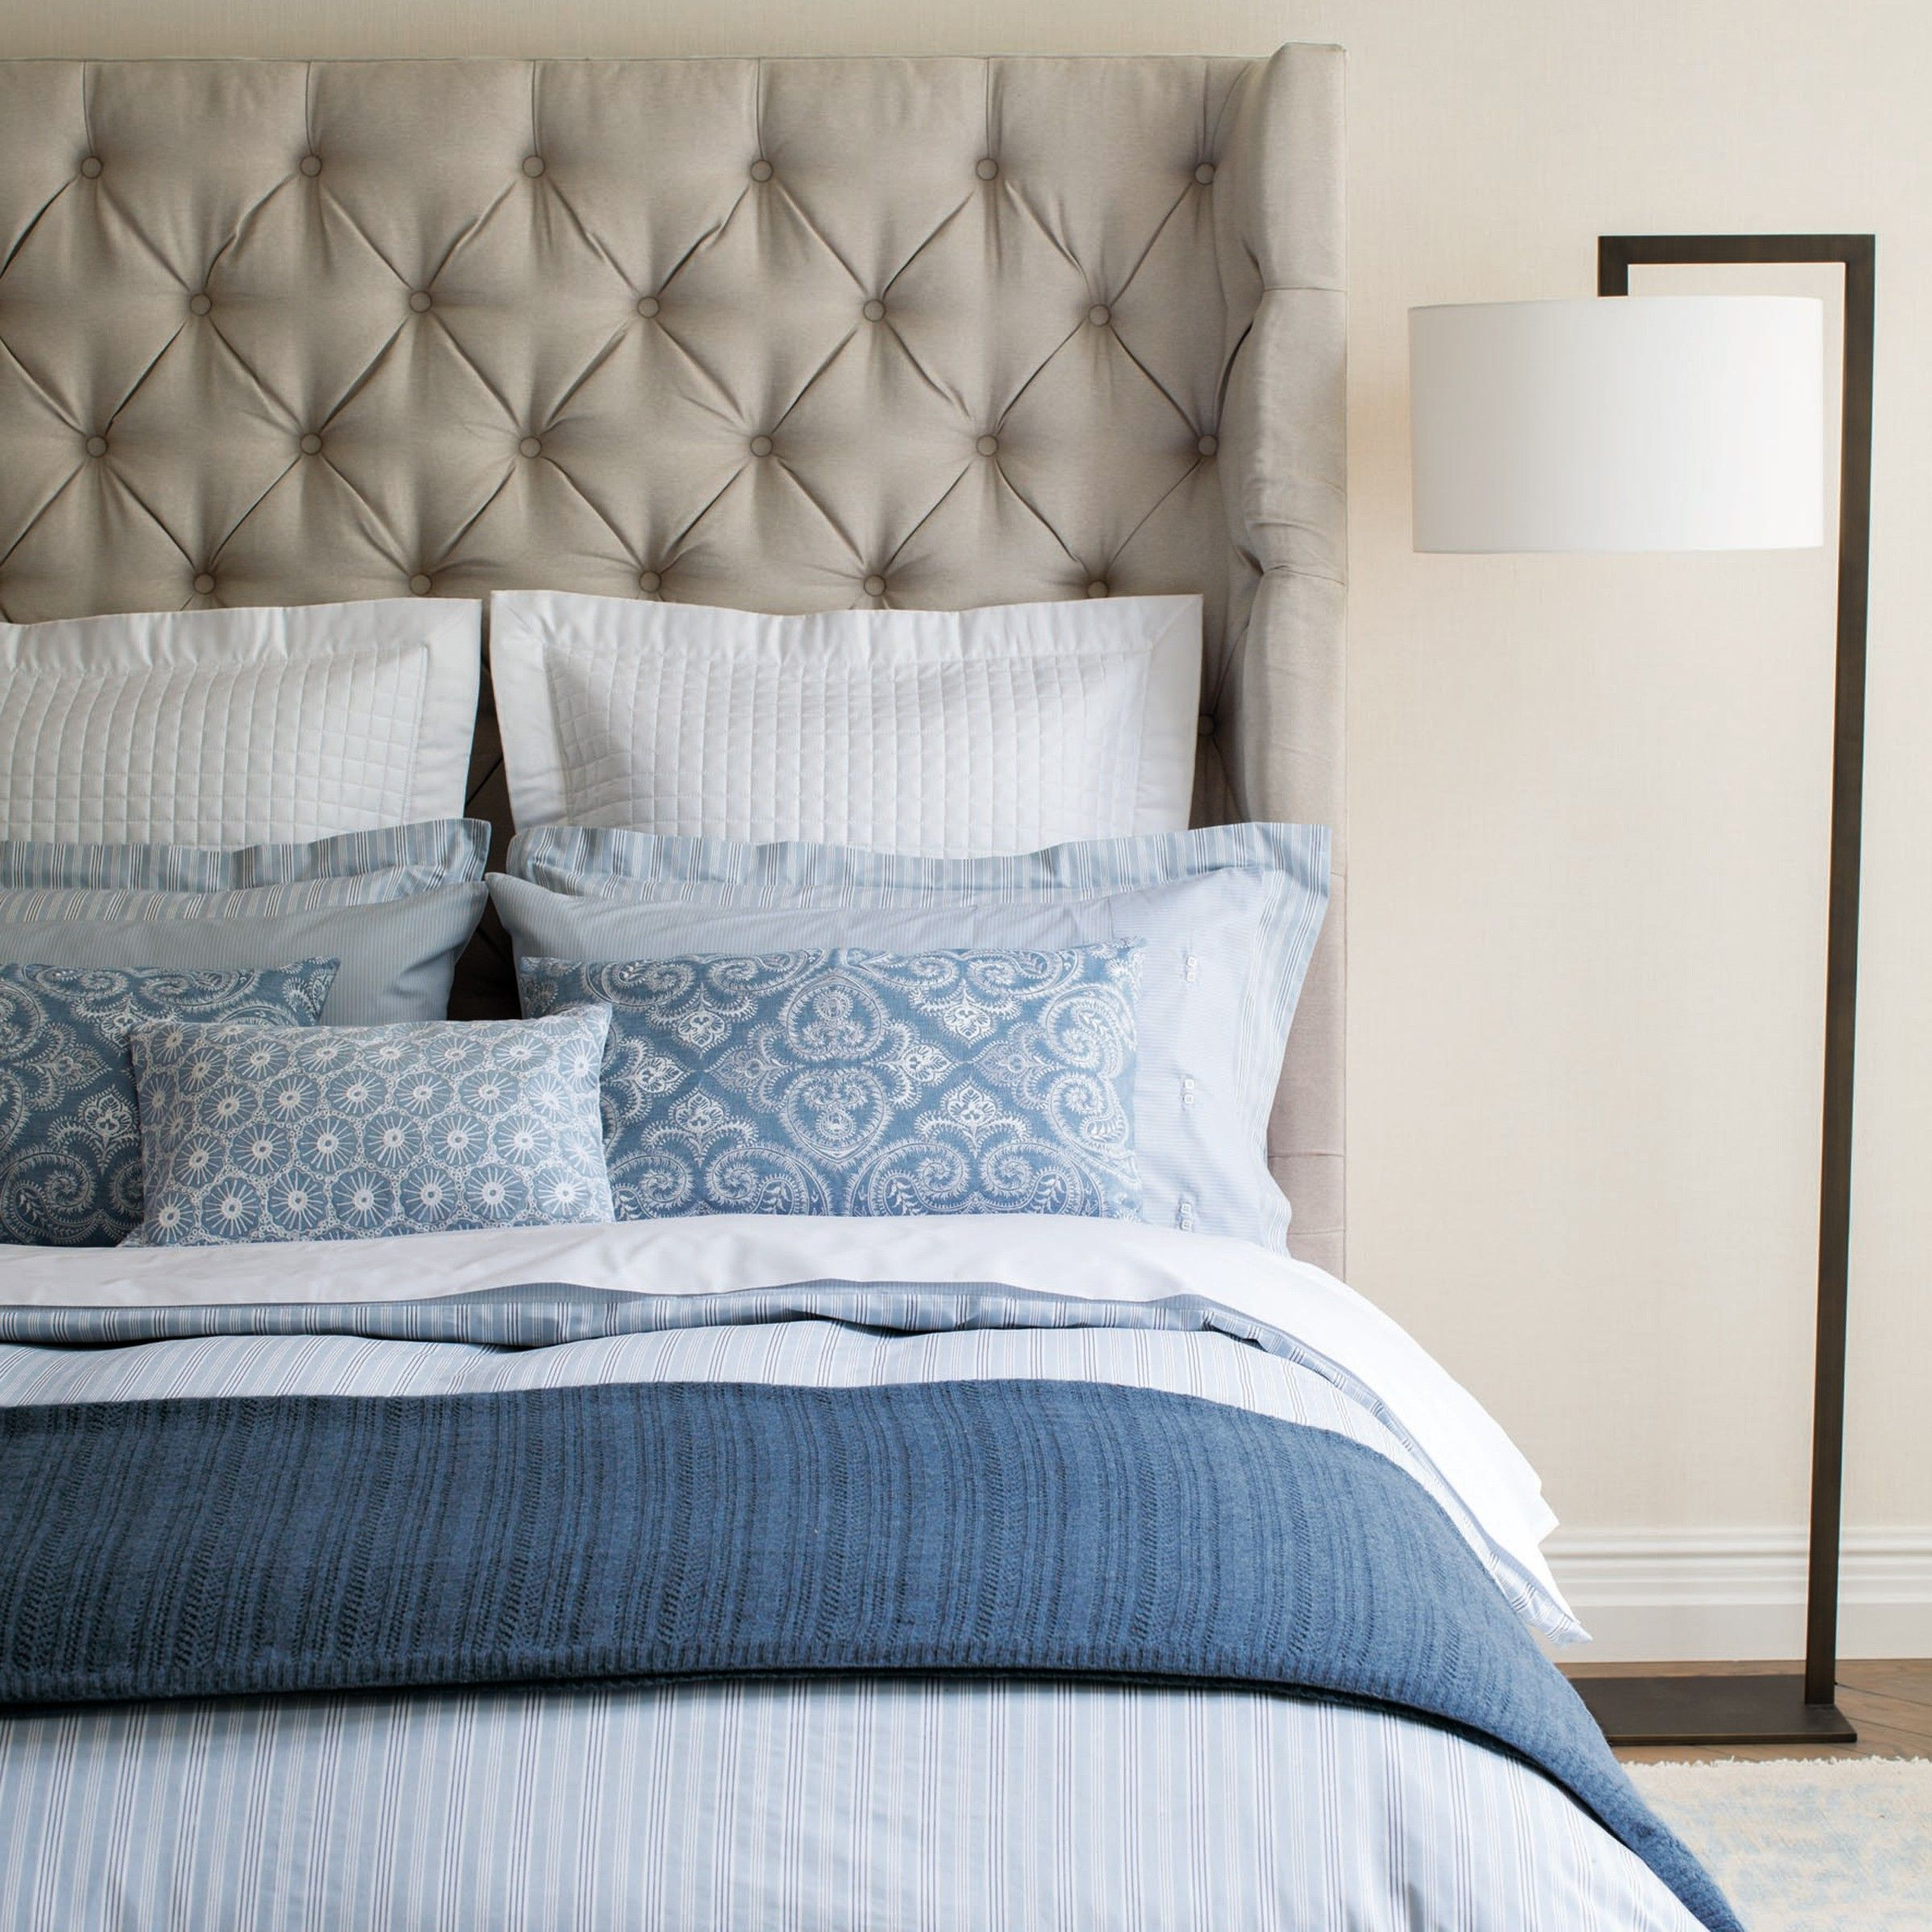 full linen stripe pinstriped navy set white sets blush twin wooden size stripes flannel cotton with cover striped duvets grey pretty stonewashed ticking king soft single closures closure stone bedding super comforter of wood duvet gray handmade button black covers and by yellow